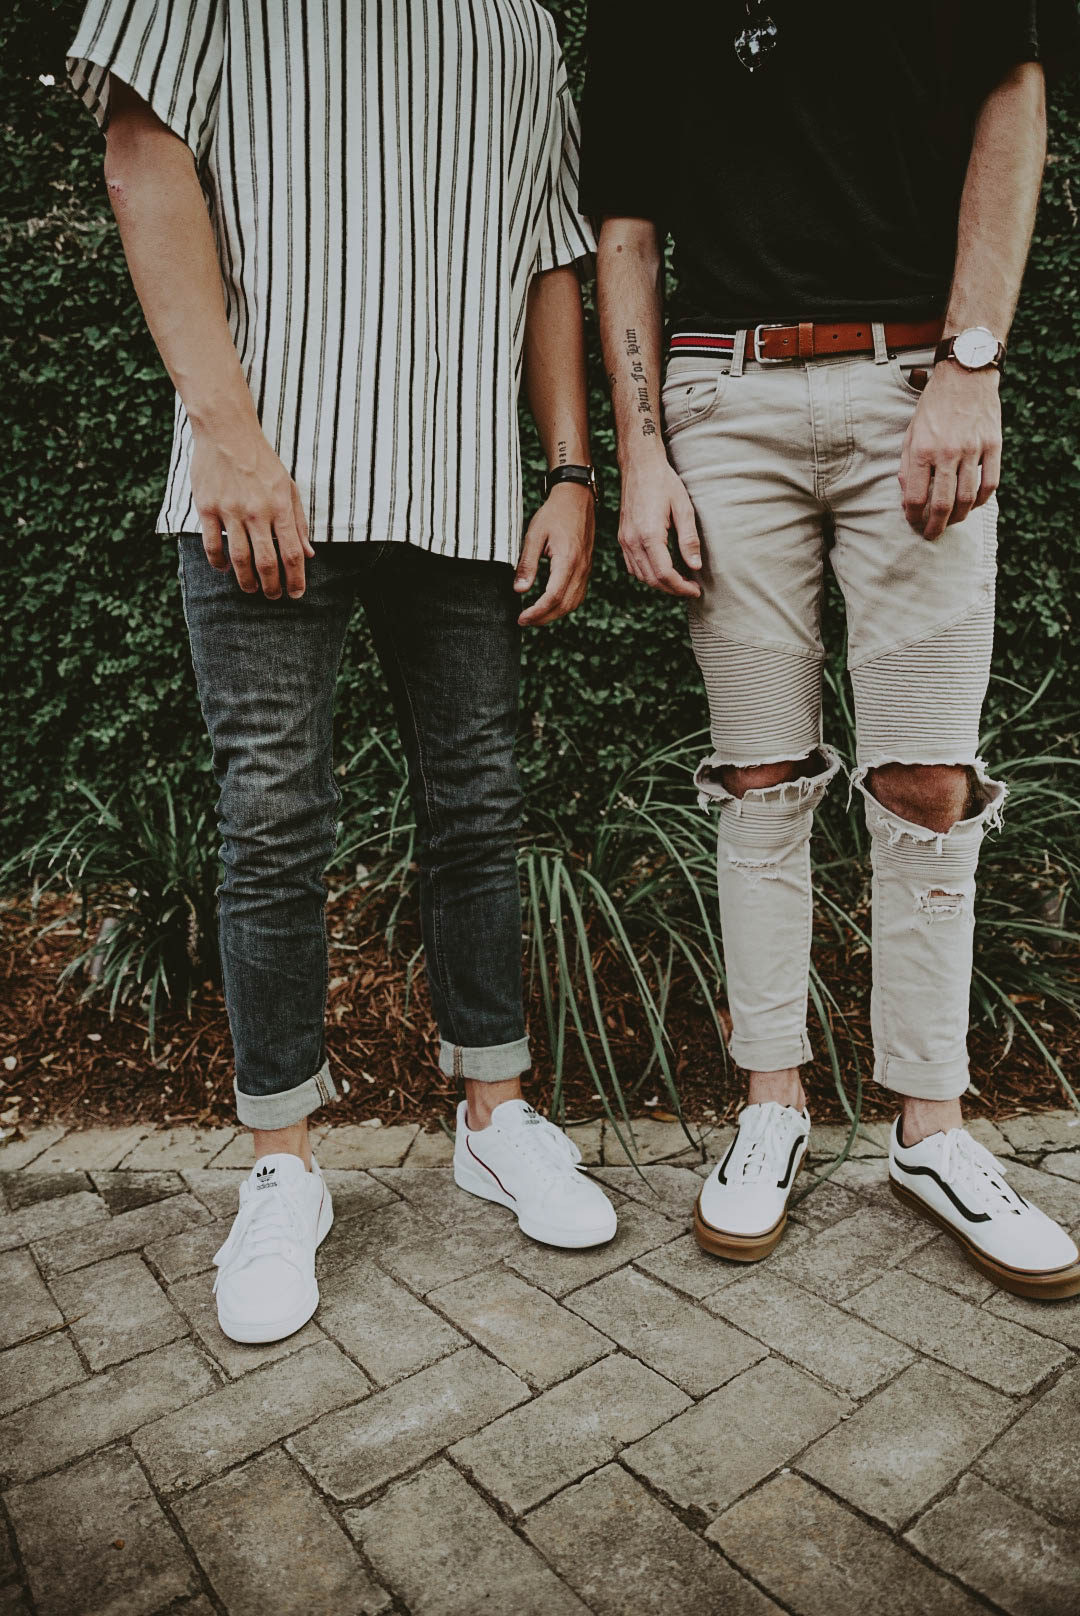 mens fashion blog on the rise?